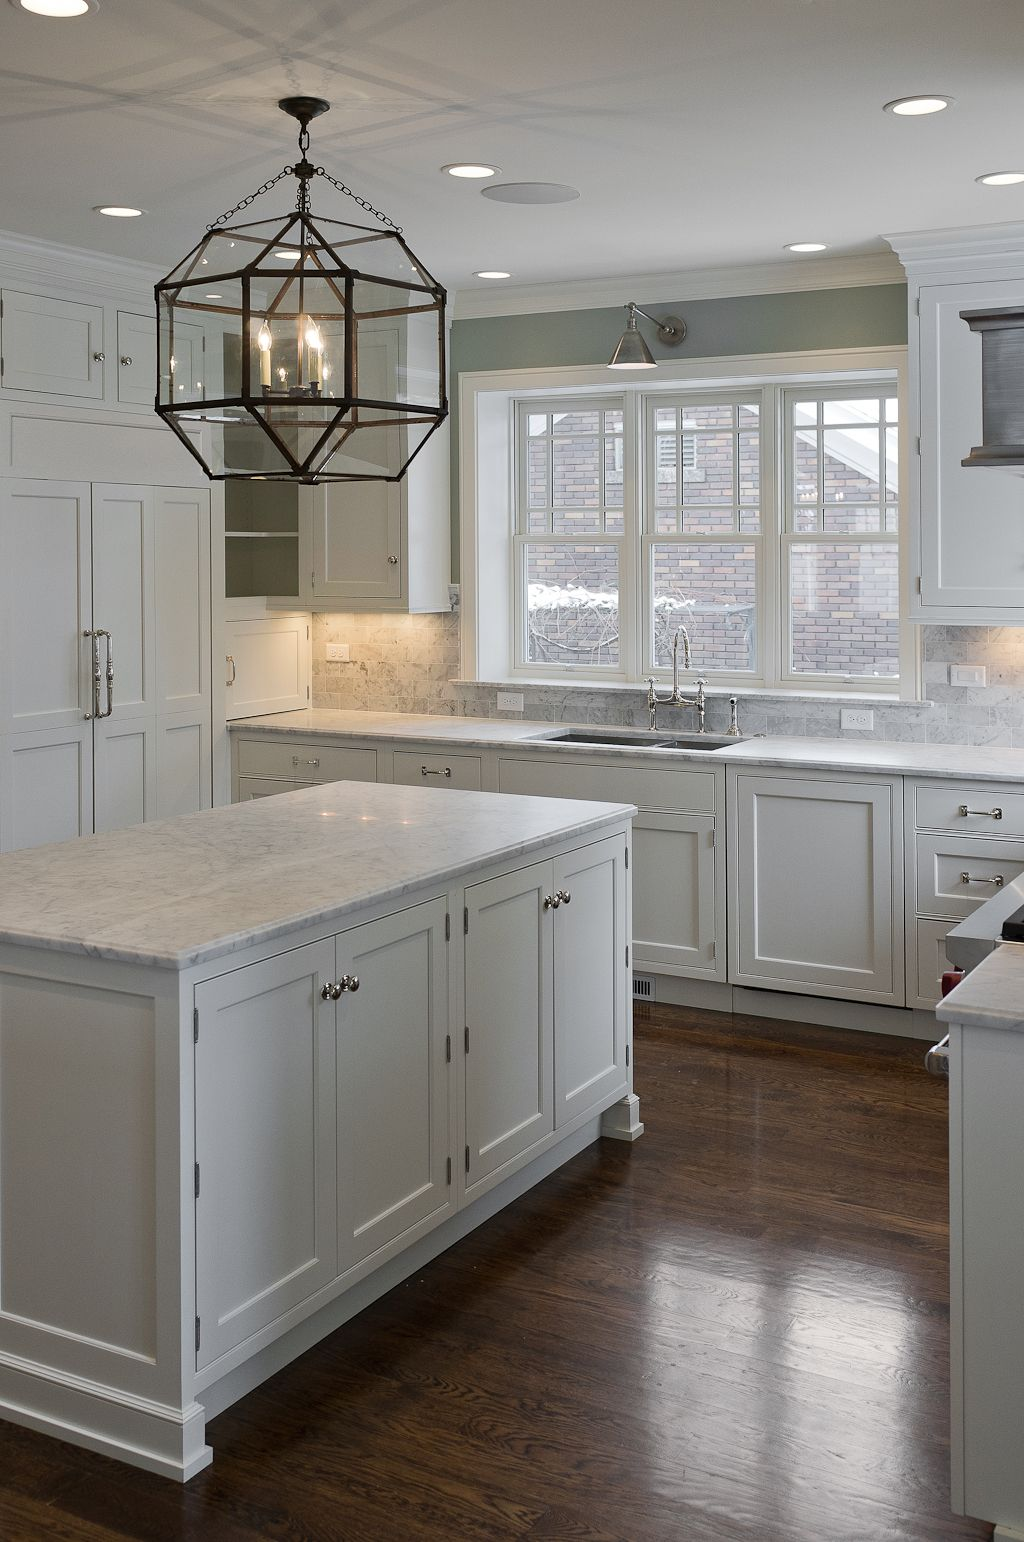 Of White Kitchens With Dark Floors 30 Spectacular White Kitchens With Dark Wood Floors Cabinets